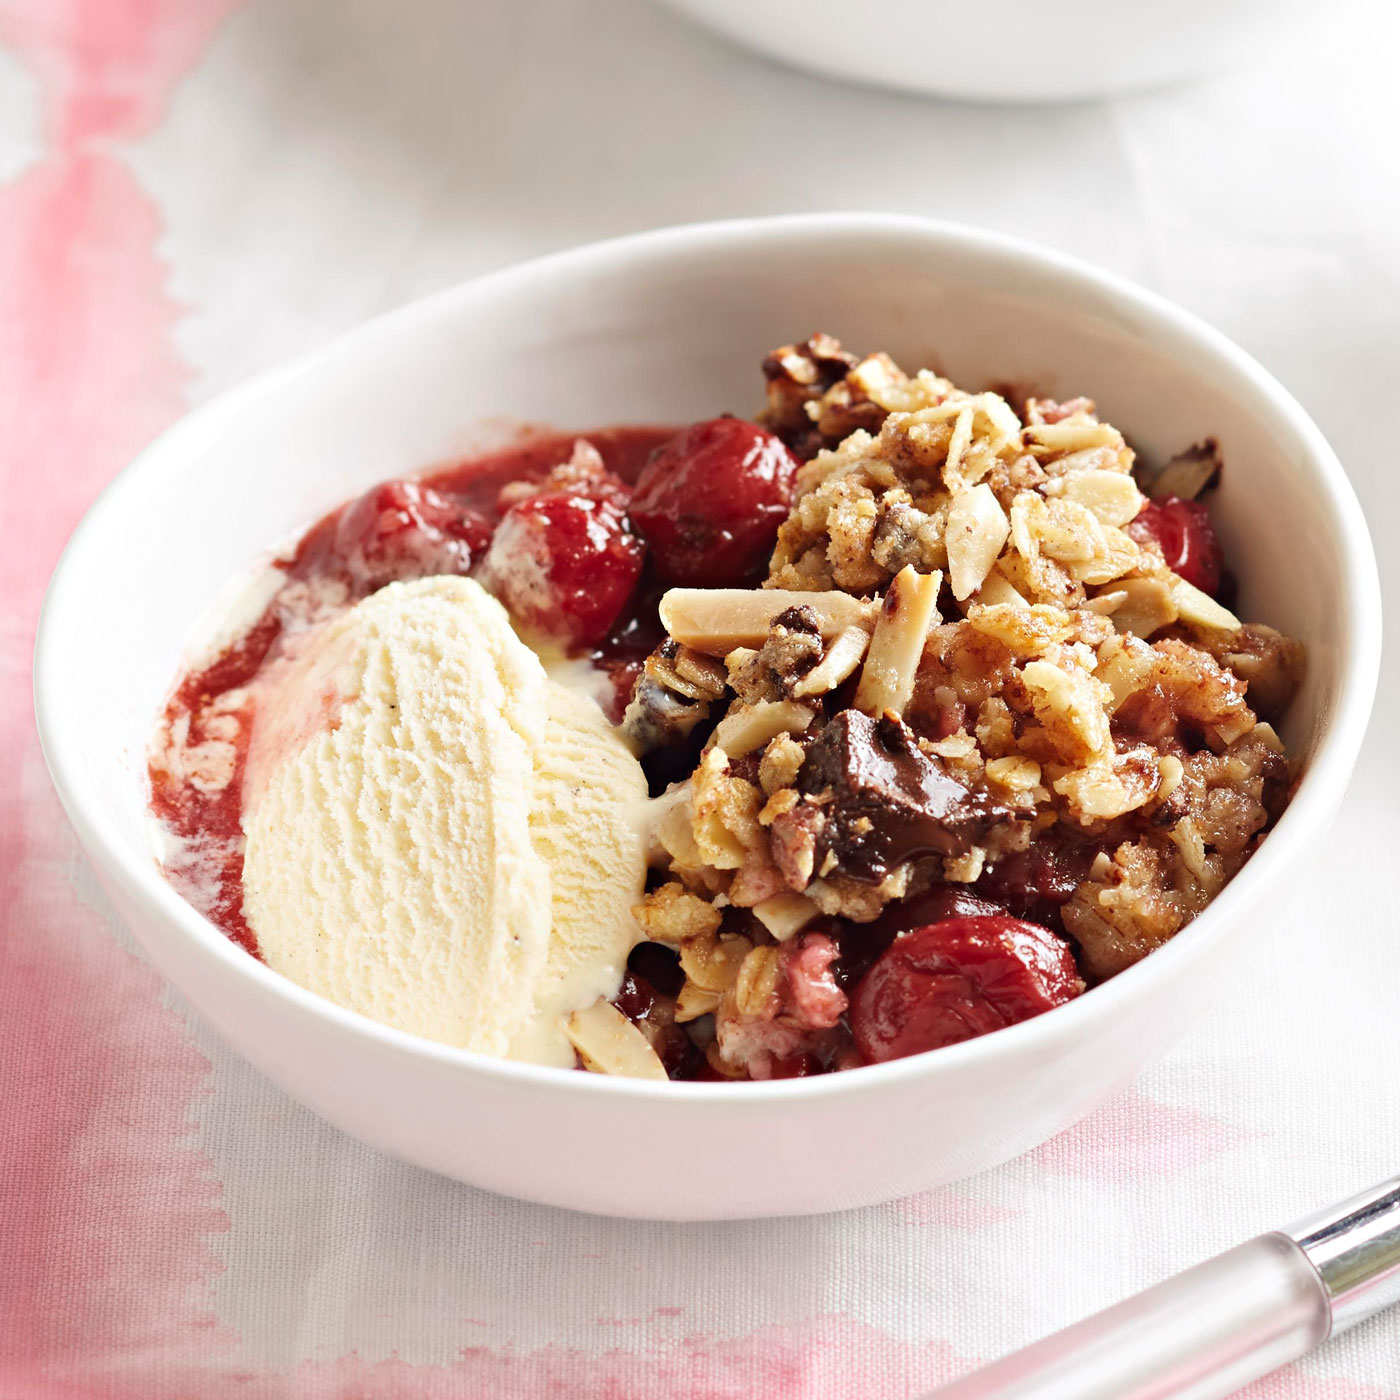 Chocolate-Cherry Crisp